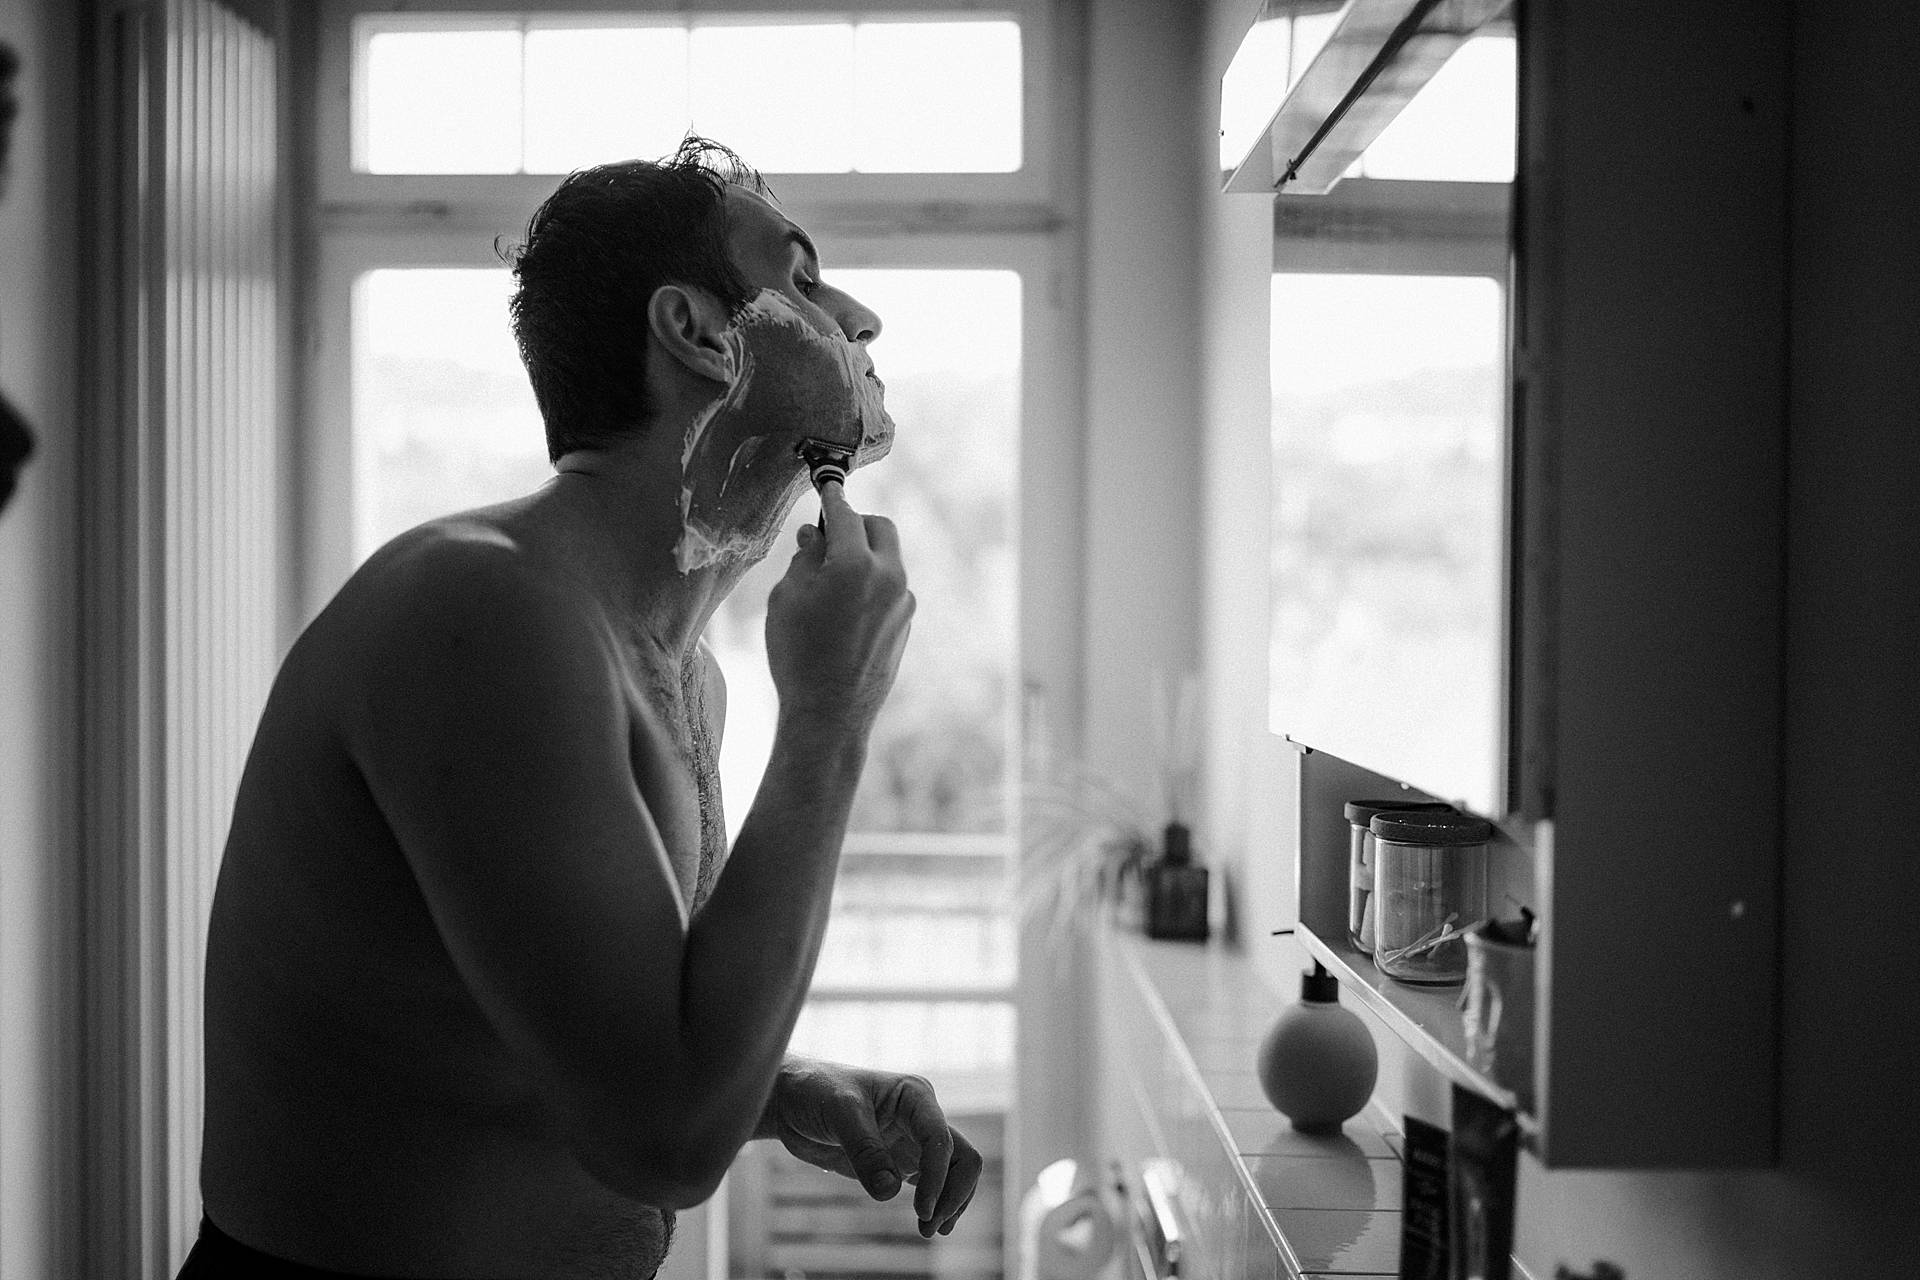 Best Wedding Photography in Switzerland | The groom prepares for the eventful day